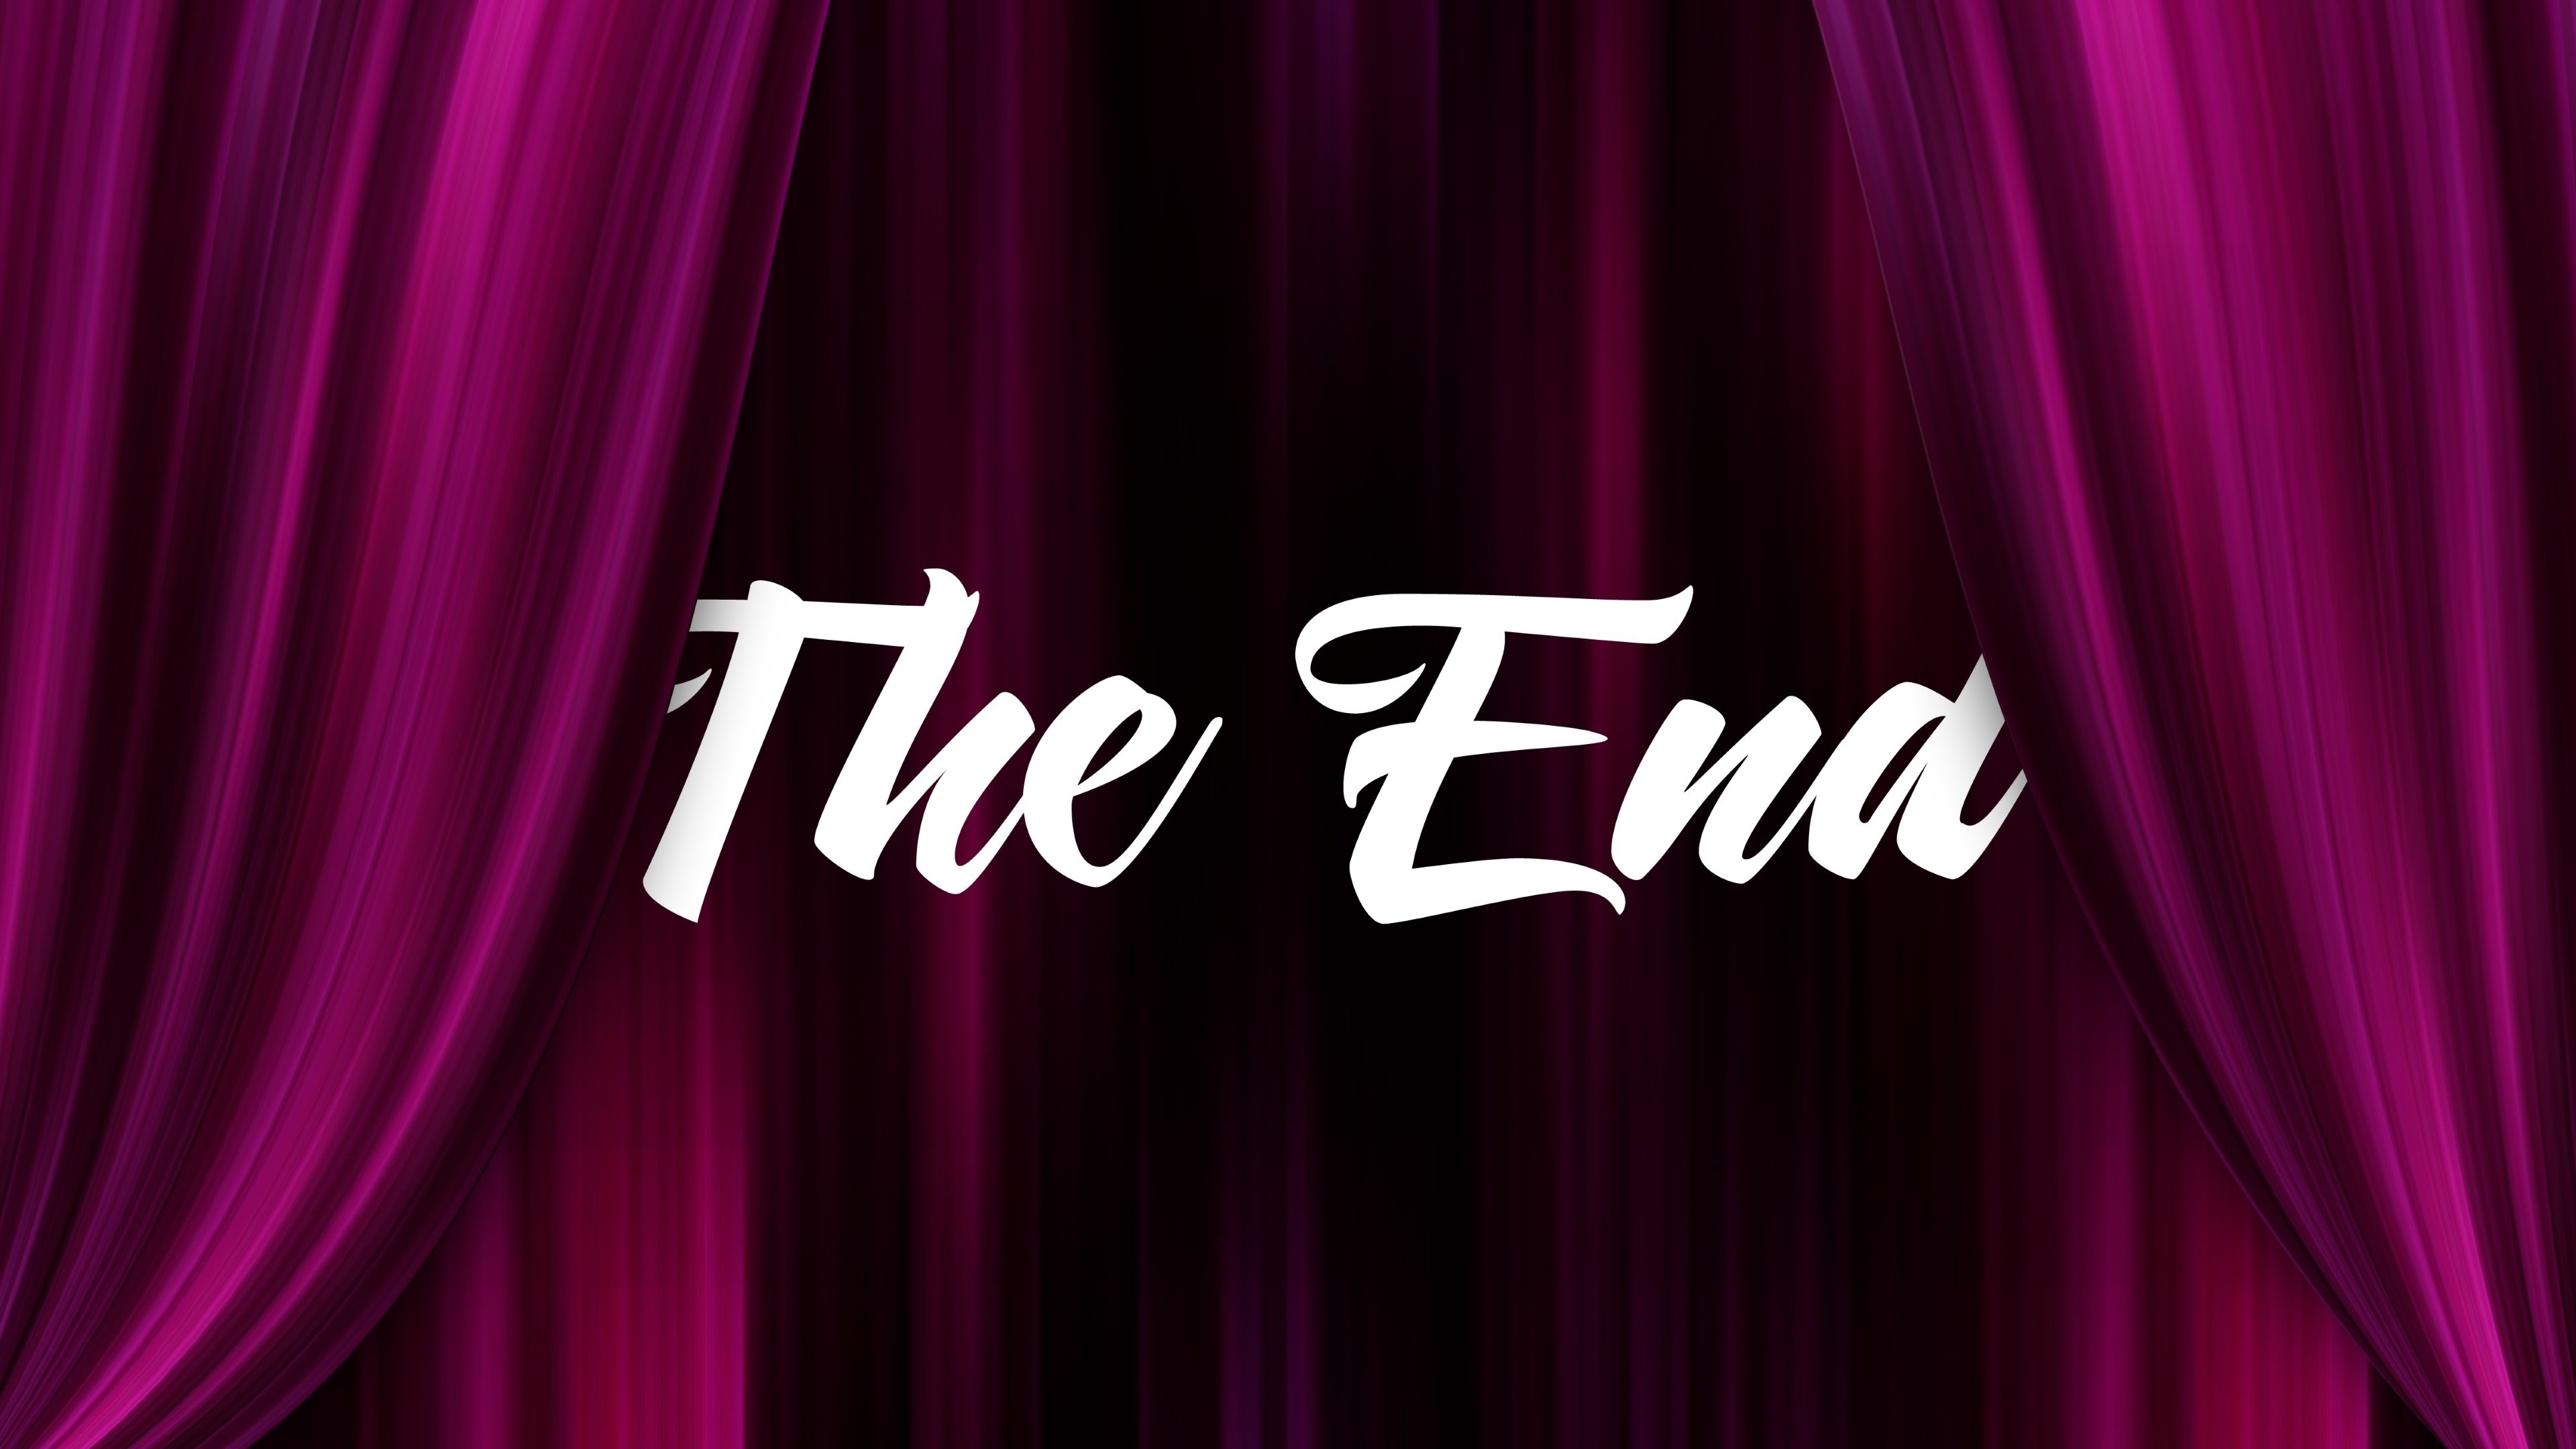 The End 4k Ultra HD Wallpaper And Background Image